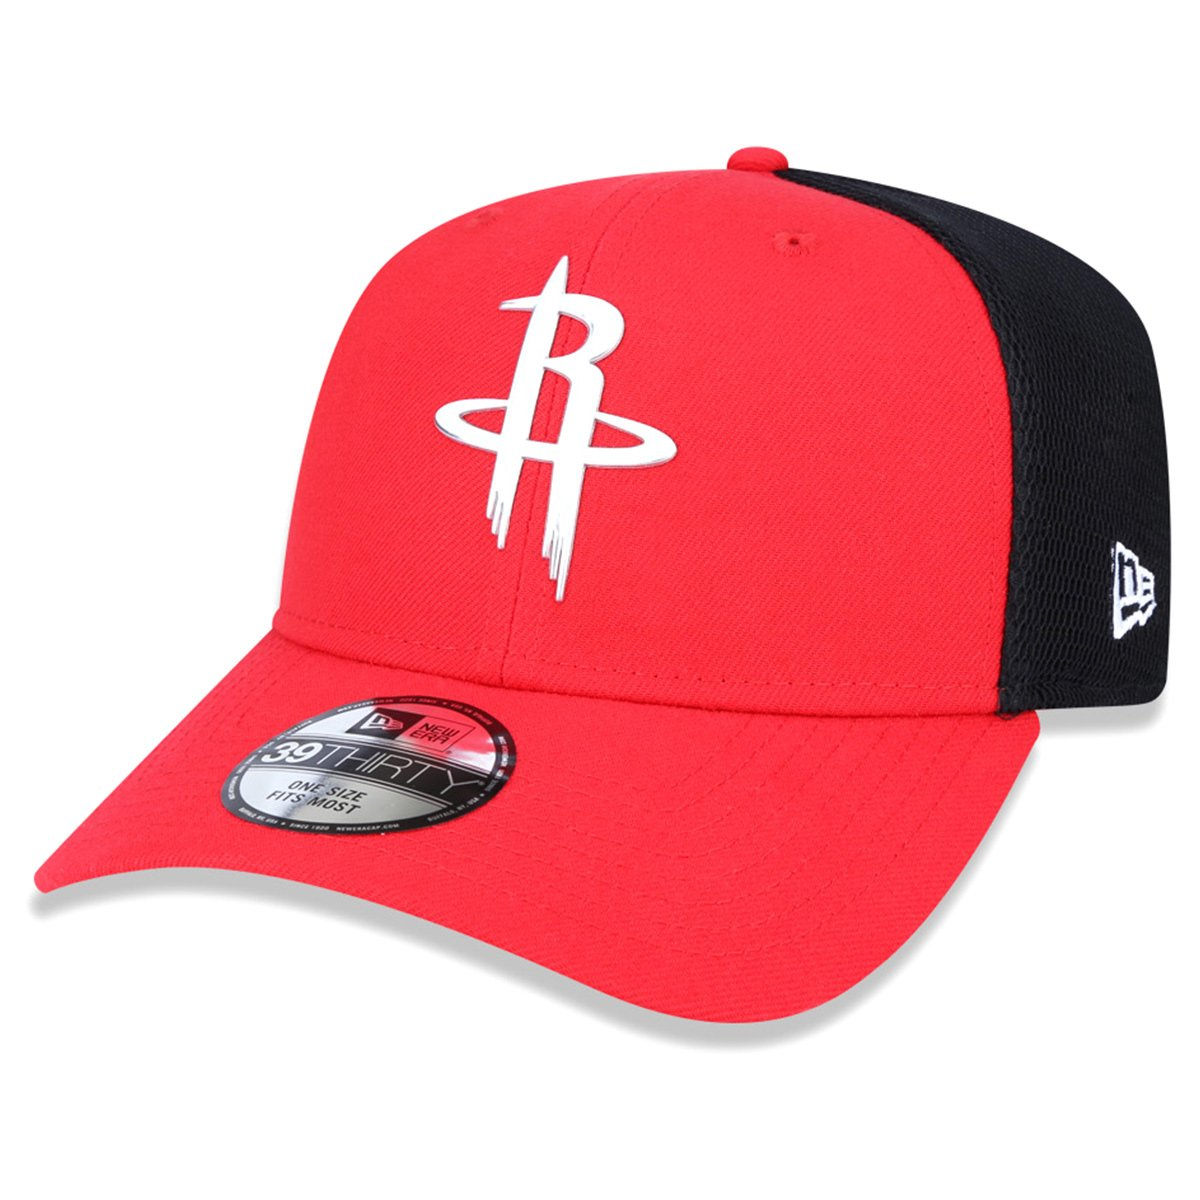 a42362ed6c Boné New Era NBA Houston Rockets Aba Curva 3930 - Compre Agora ...